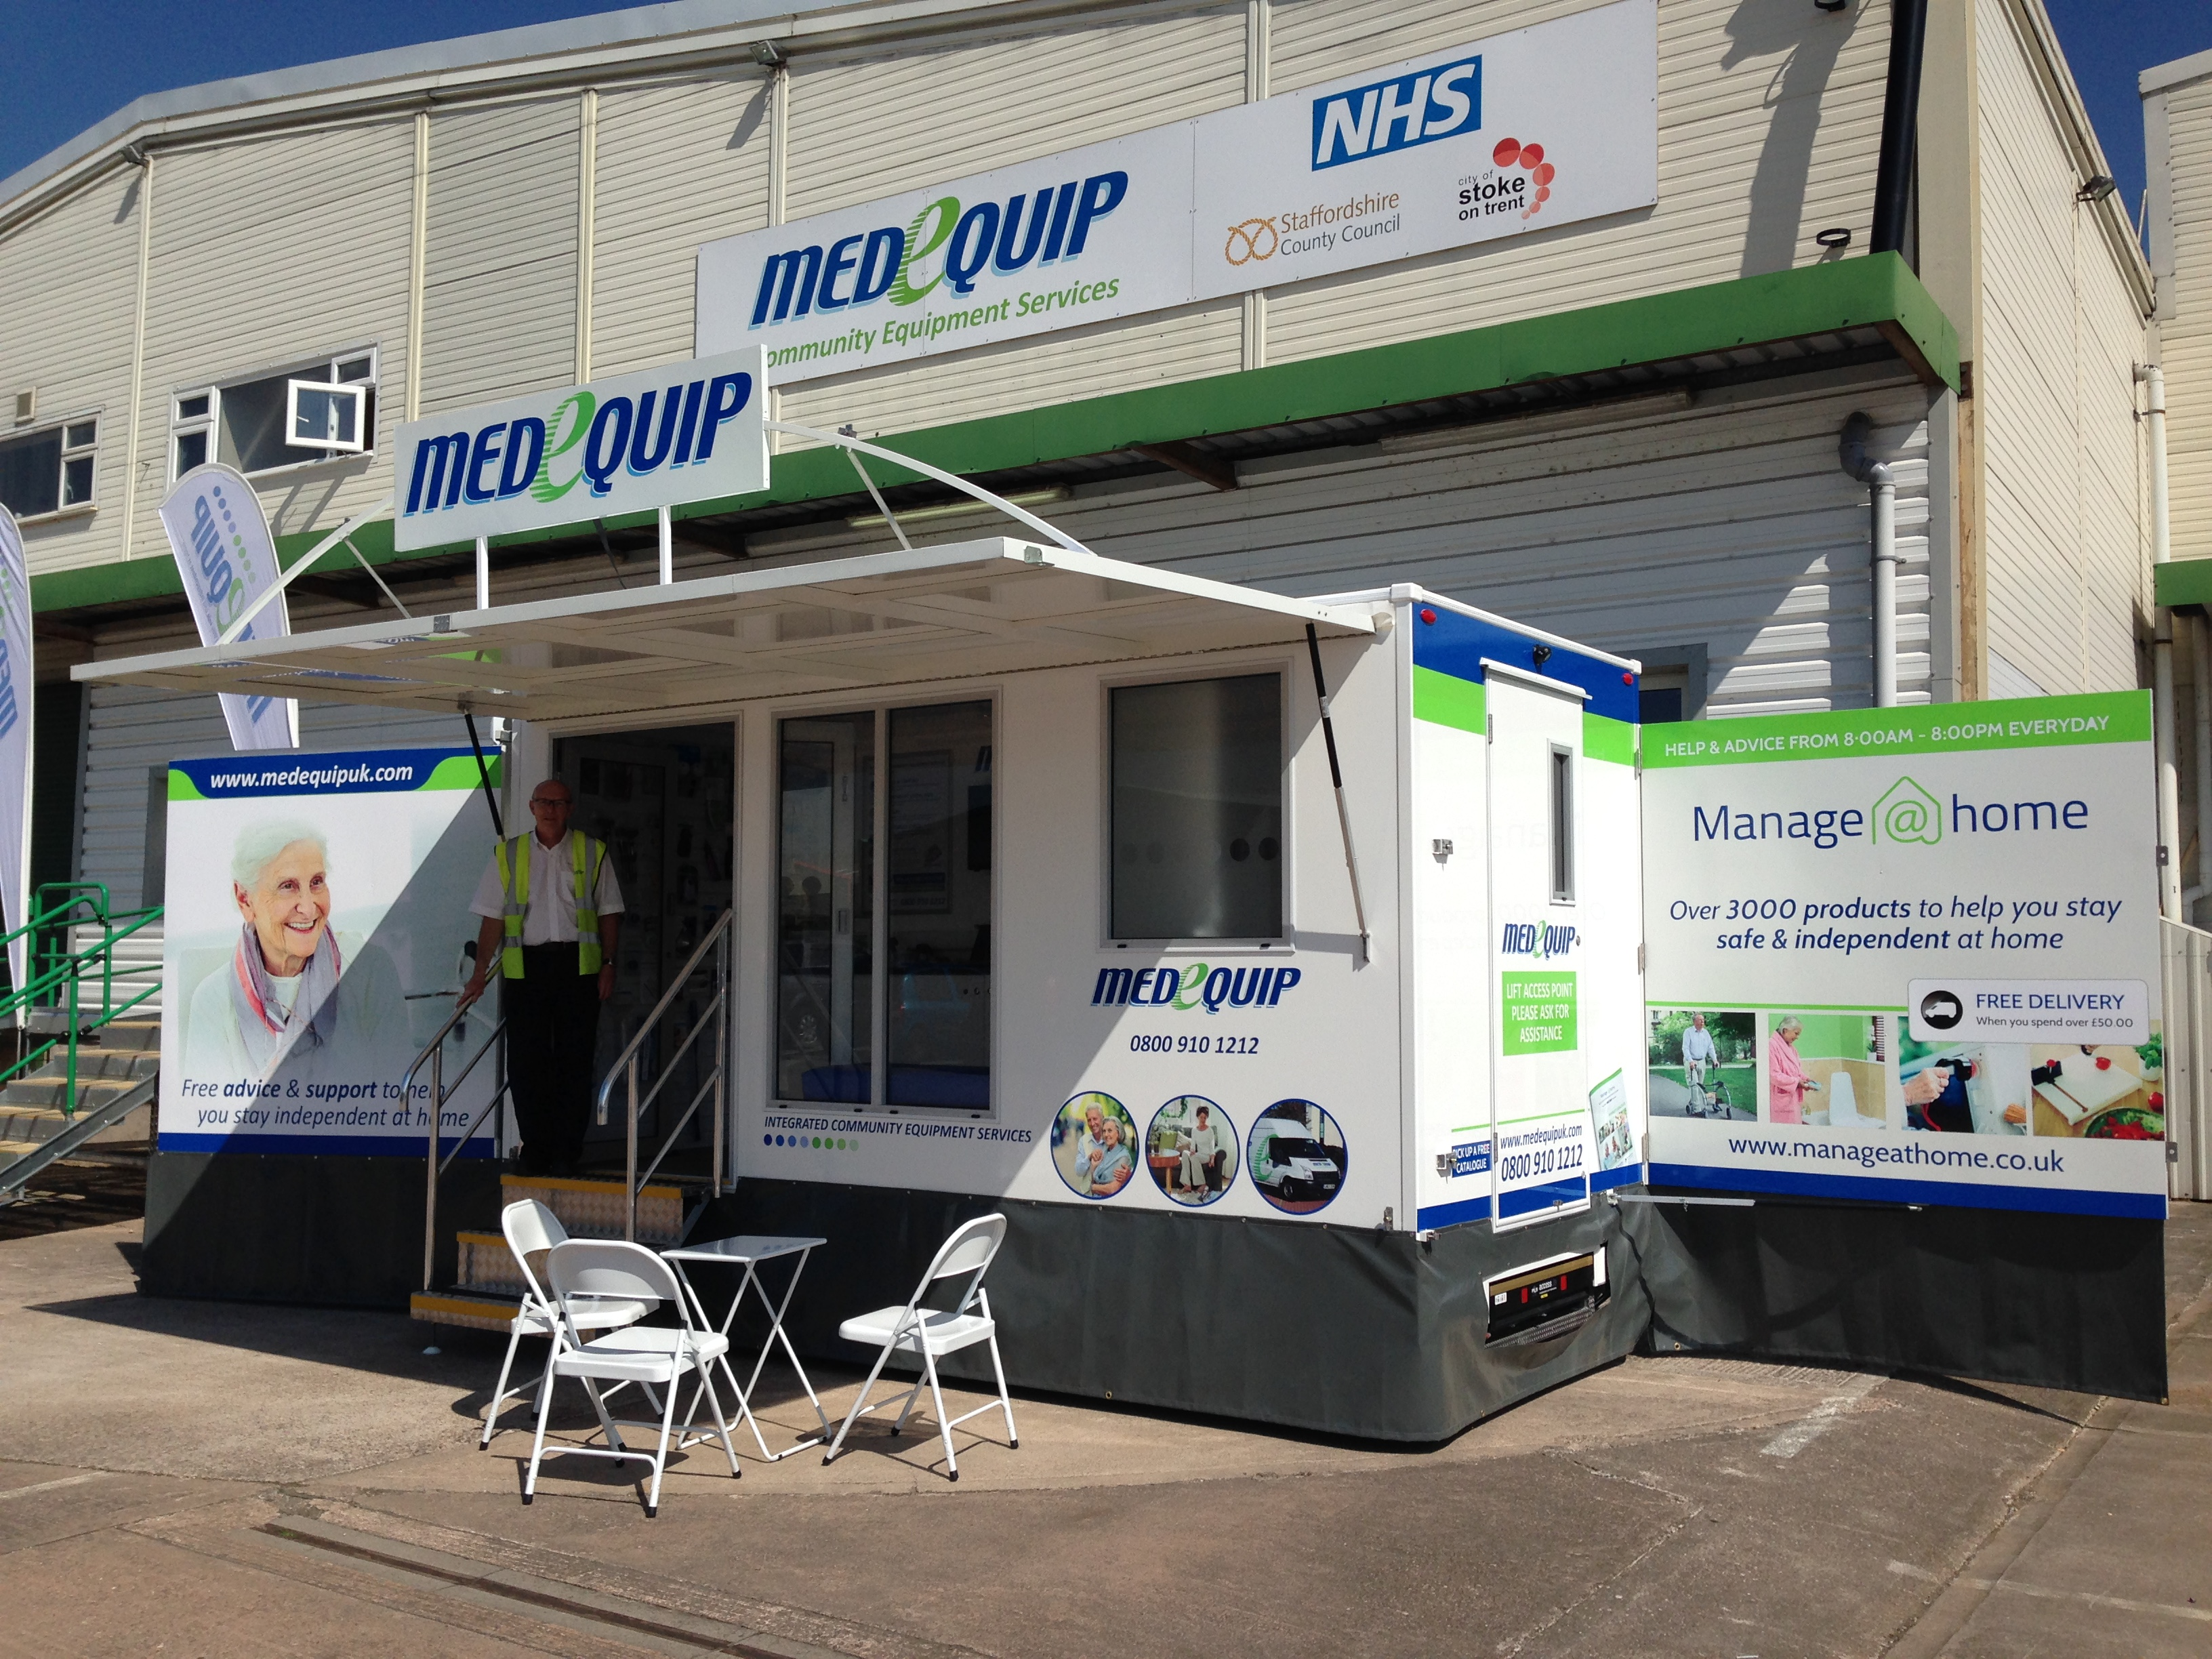 Photo of the Medequip Mobile Exhibition Unit outside the Medequip Stafford Depot